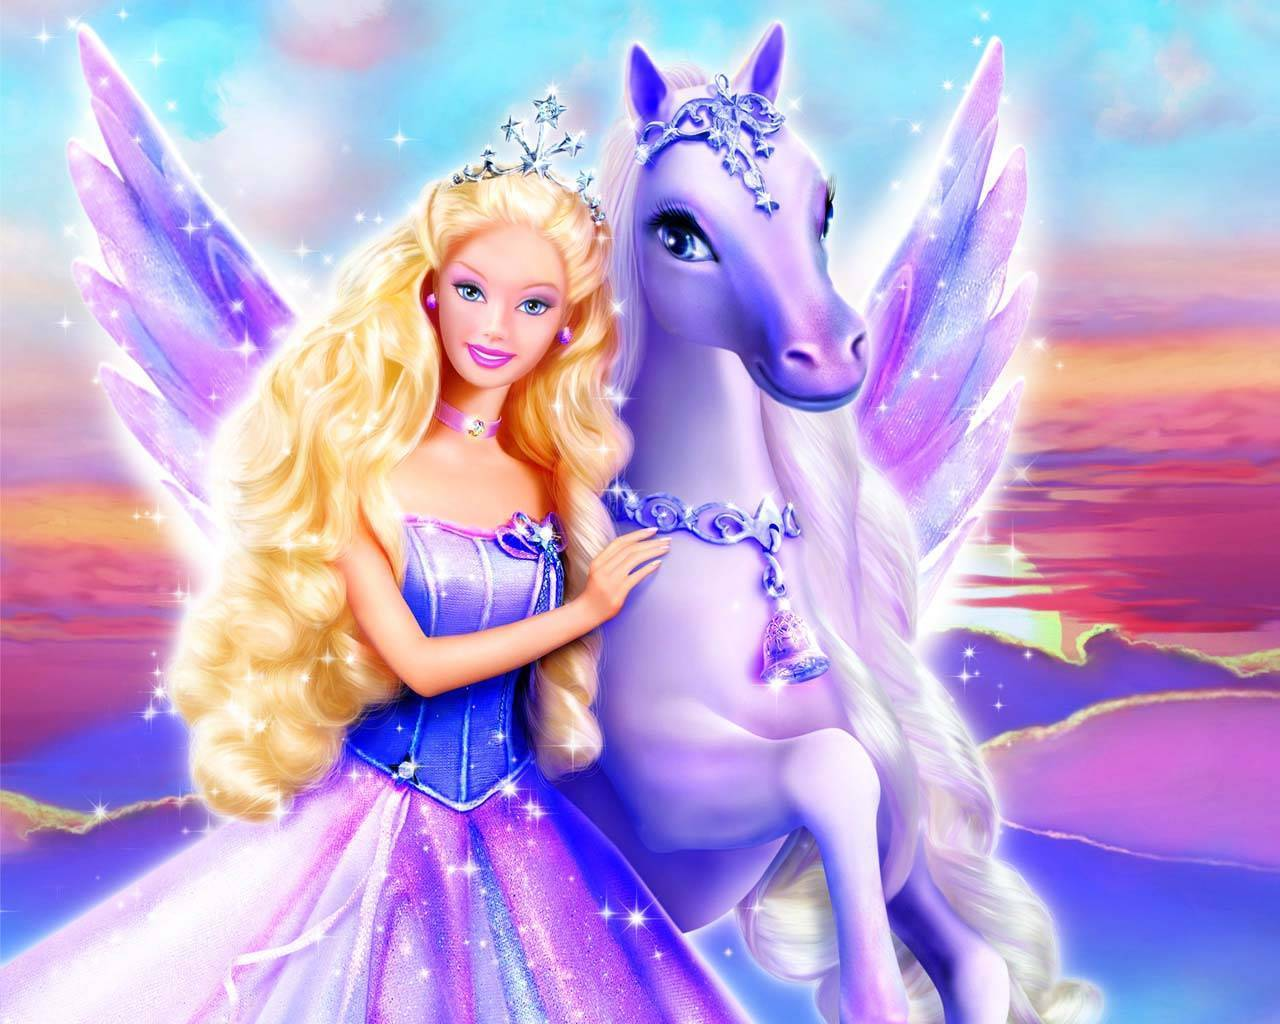 2015 By admin Comments Off on Barbie Doll Desktop HD Wallpapers 1280x1024